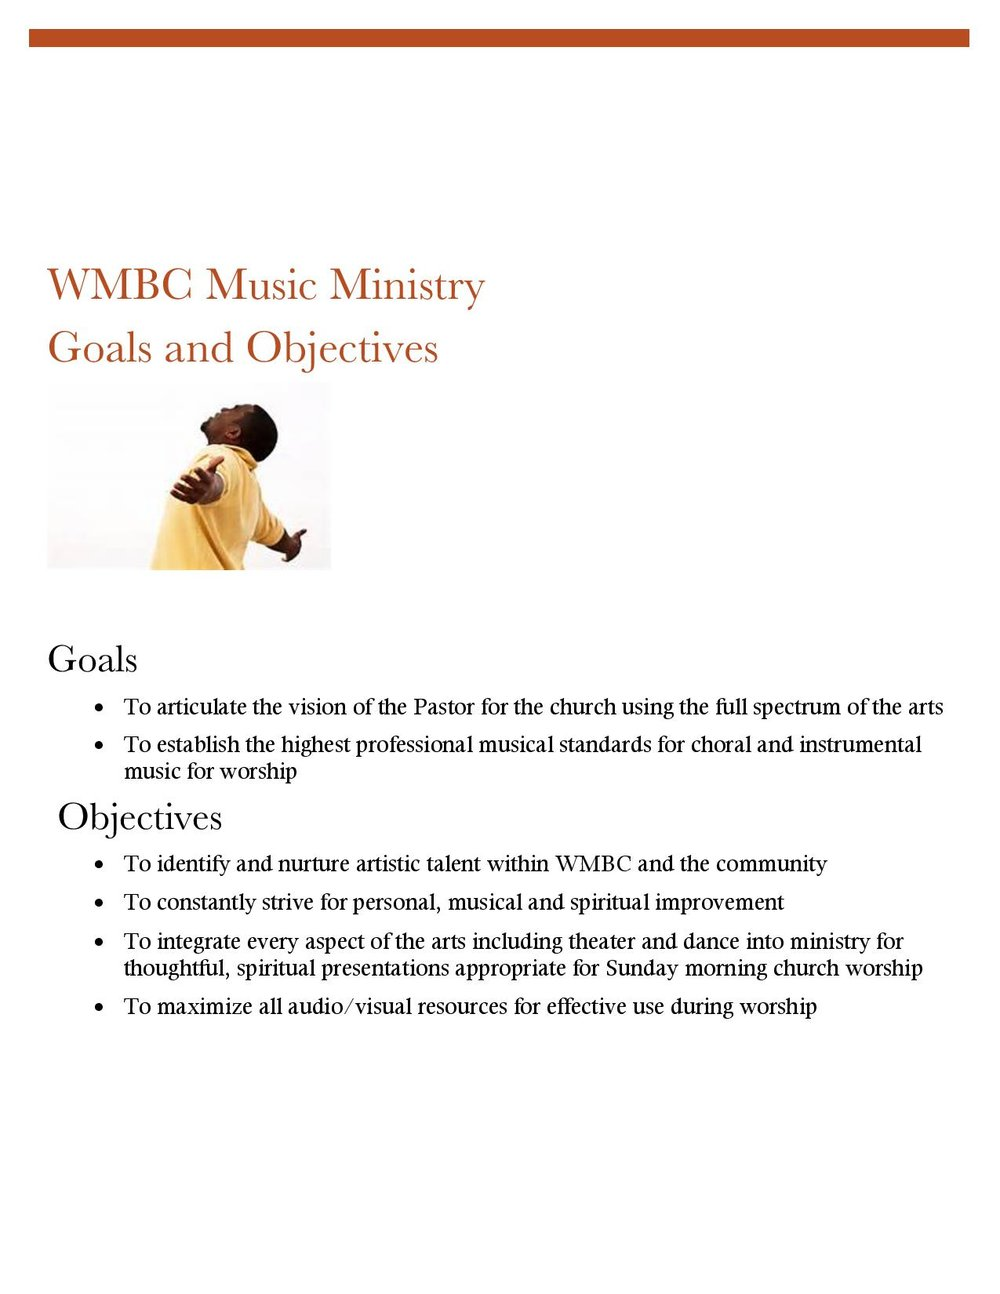 WMBC Music Ministry Newsletter November 2017  (Autosaved)-page-003.jpg